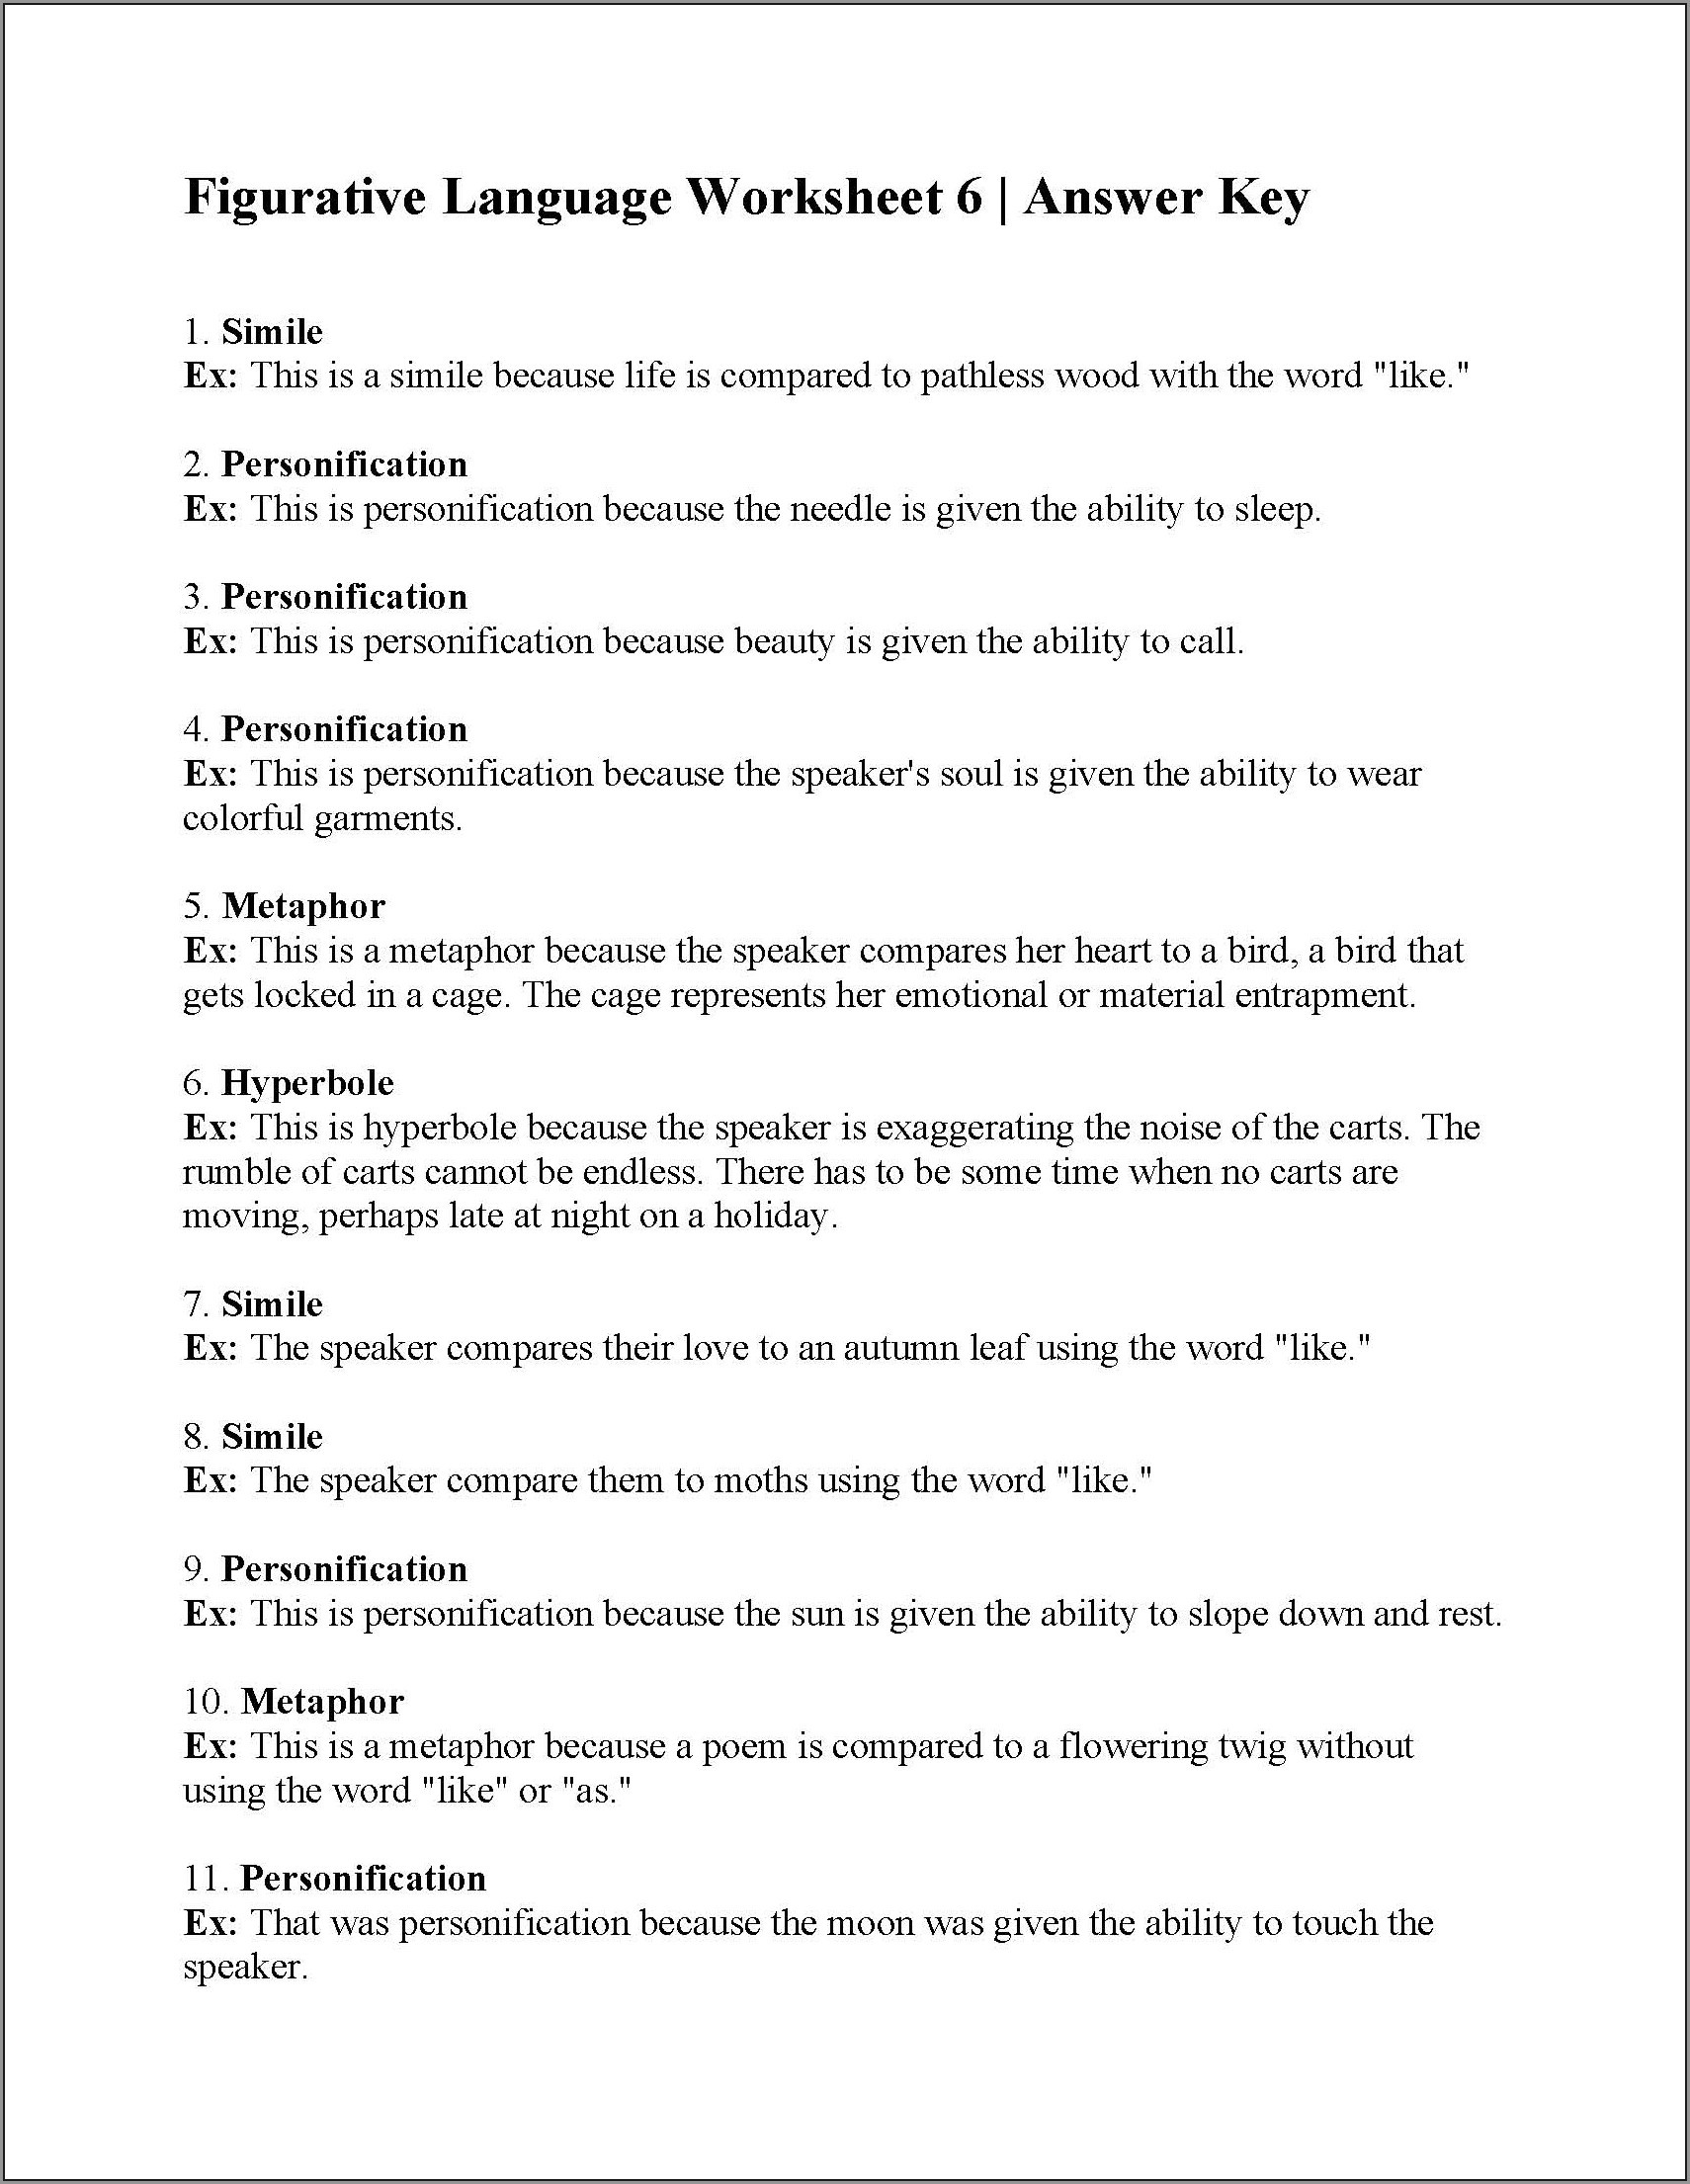 7th Grade Figurative Language Worksheet 2 Answers